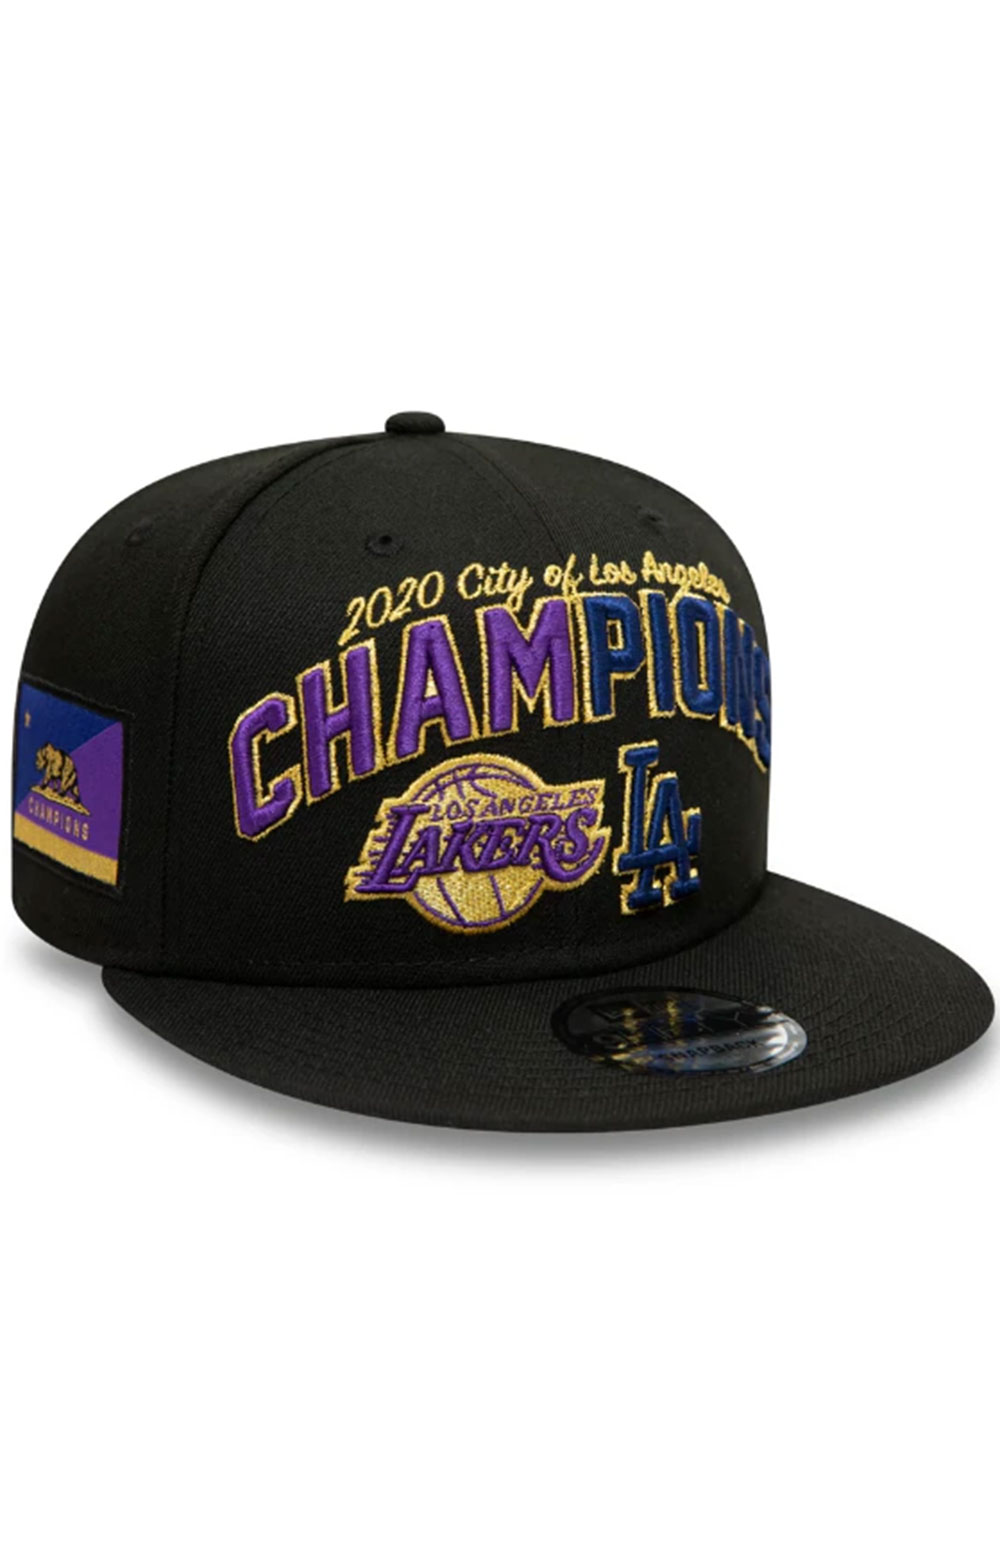 Los Angeles Co Champs 2020 9FIFTY Snap-Back - Black 5